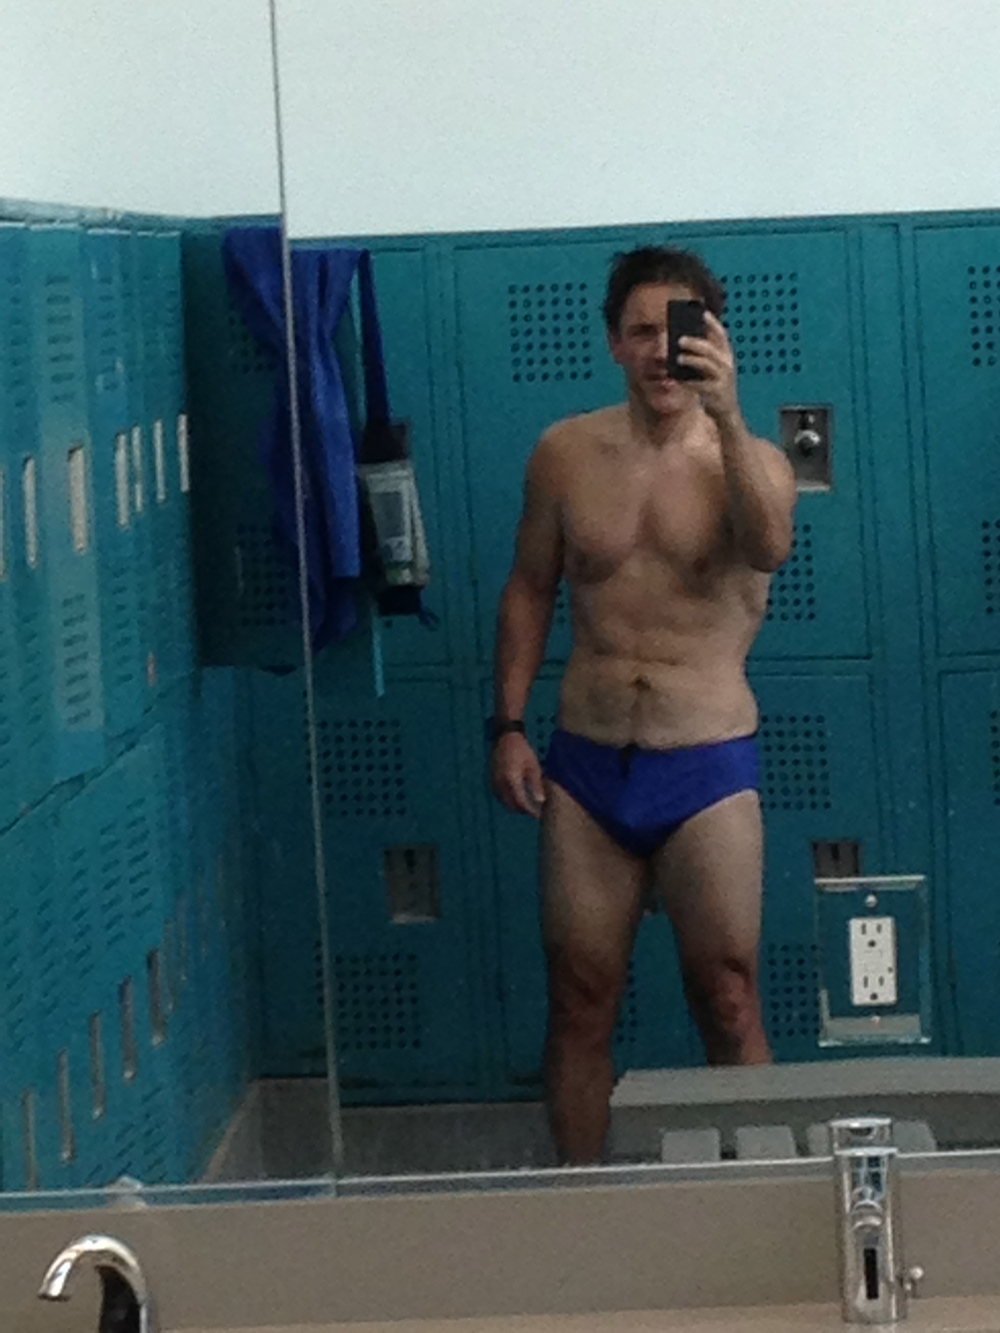 Guys always freak out for some reason when you break out a camera phone in the locker room.